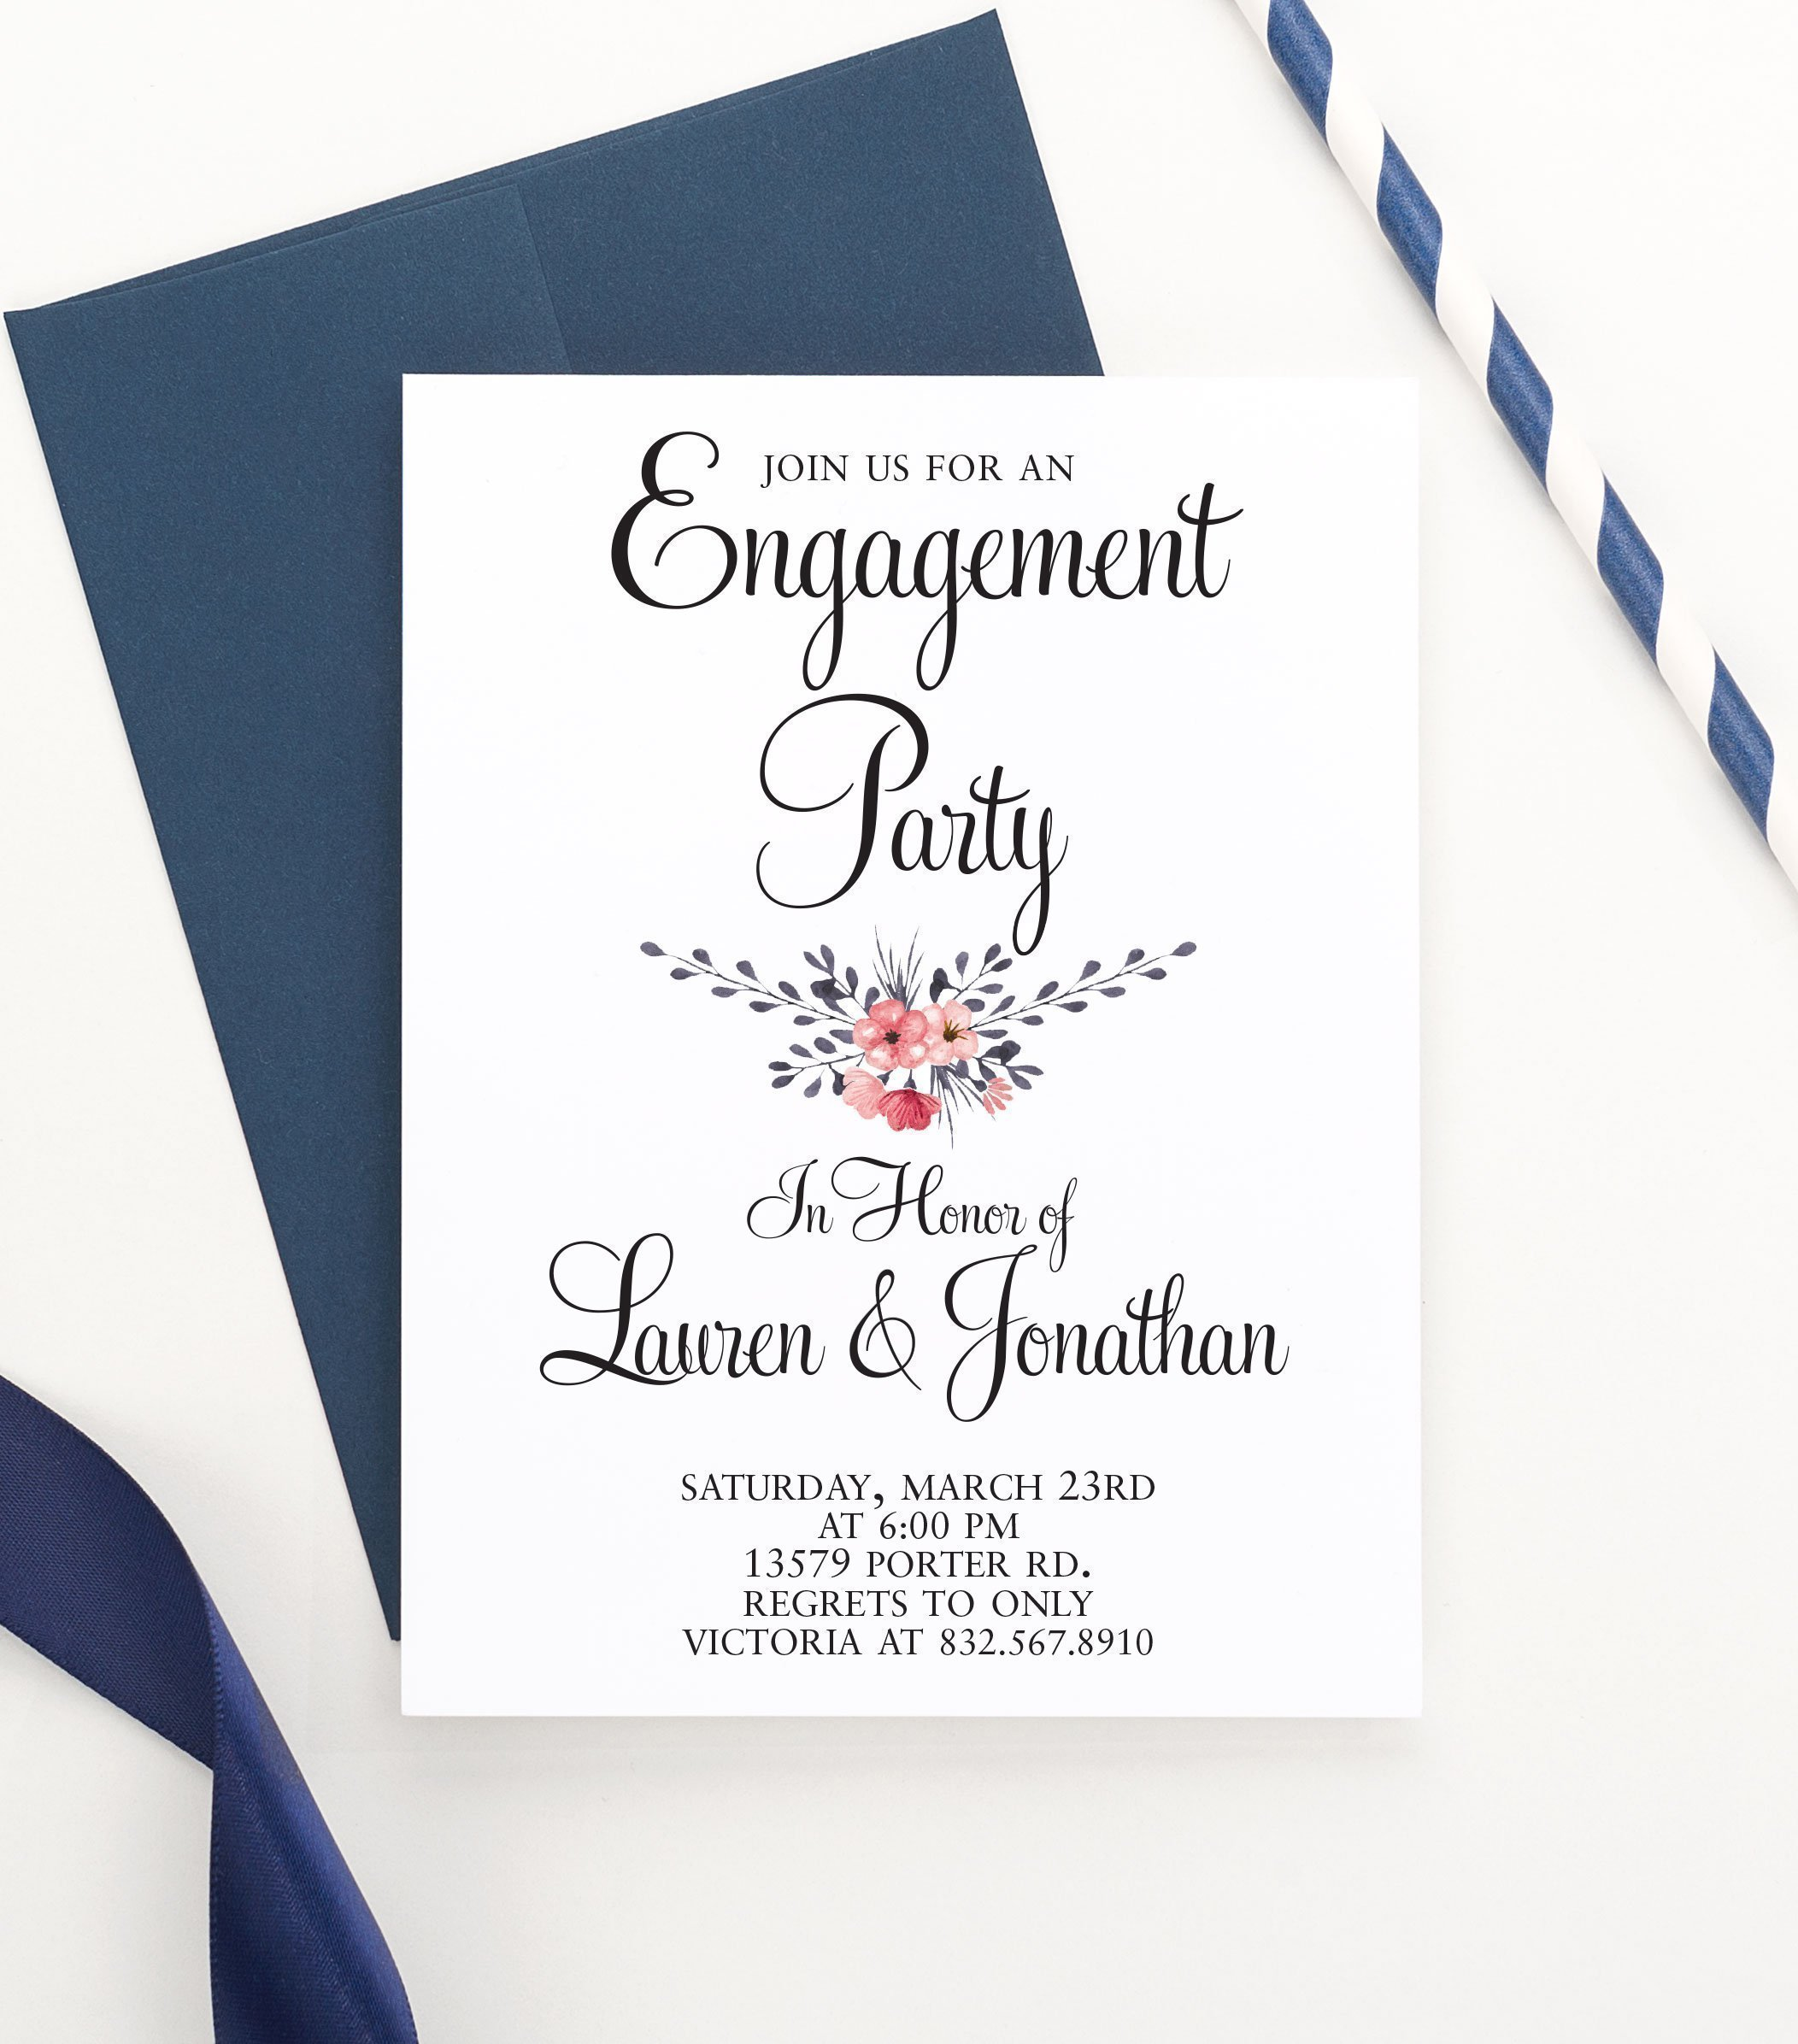 Rustic Engagement Party Invitation, Floral Engagement Party Invitation, Engagement Announcements, Engagement Party Invitations, Your choice of quantity and envelope color